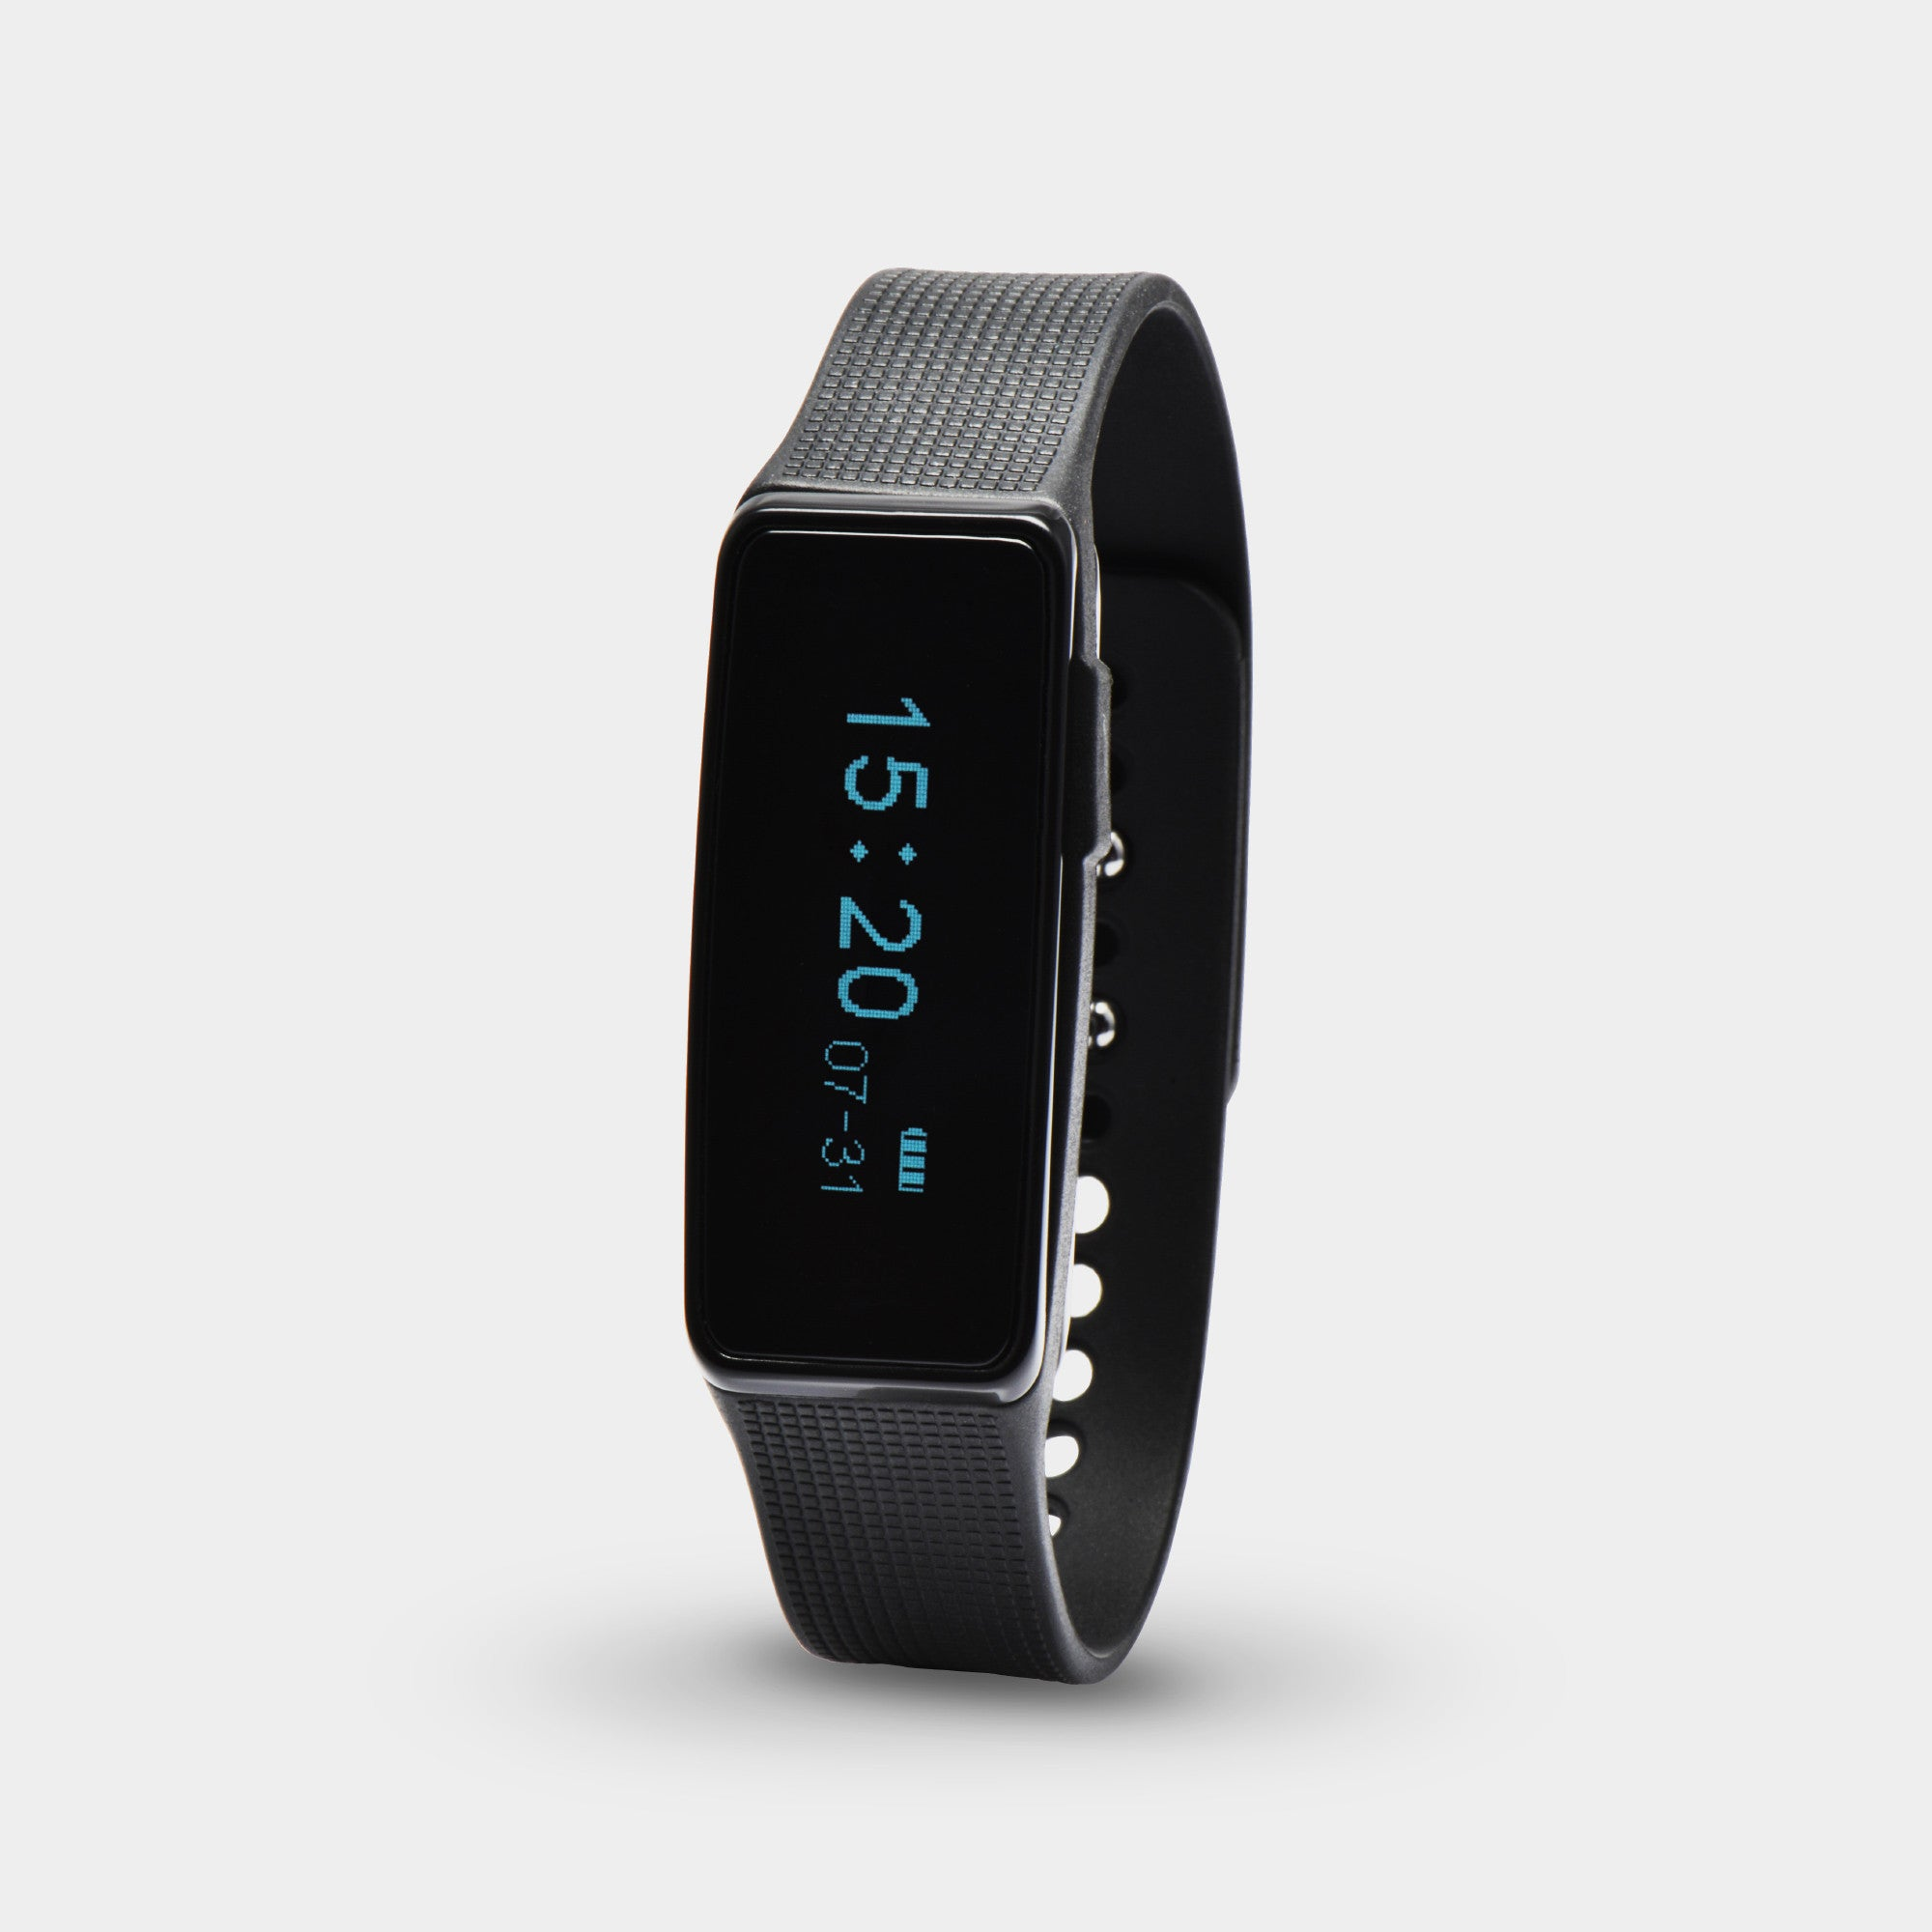 NUBAND ACTIV+ Wireless Activity Tracker (Black)